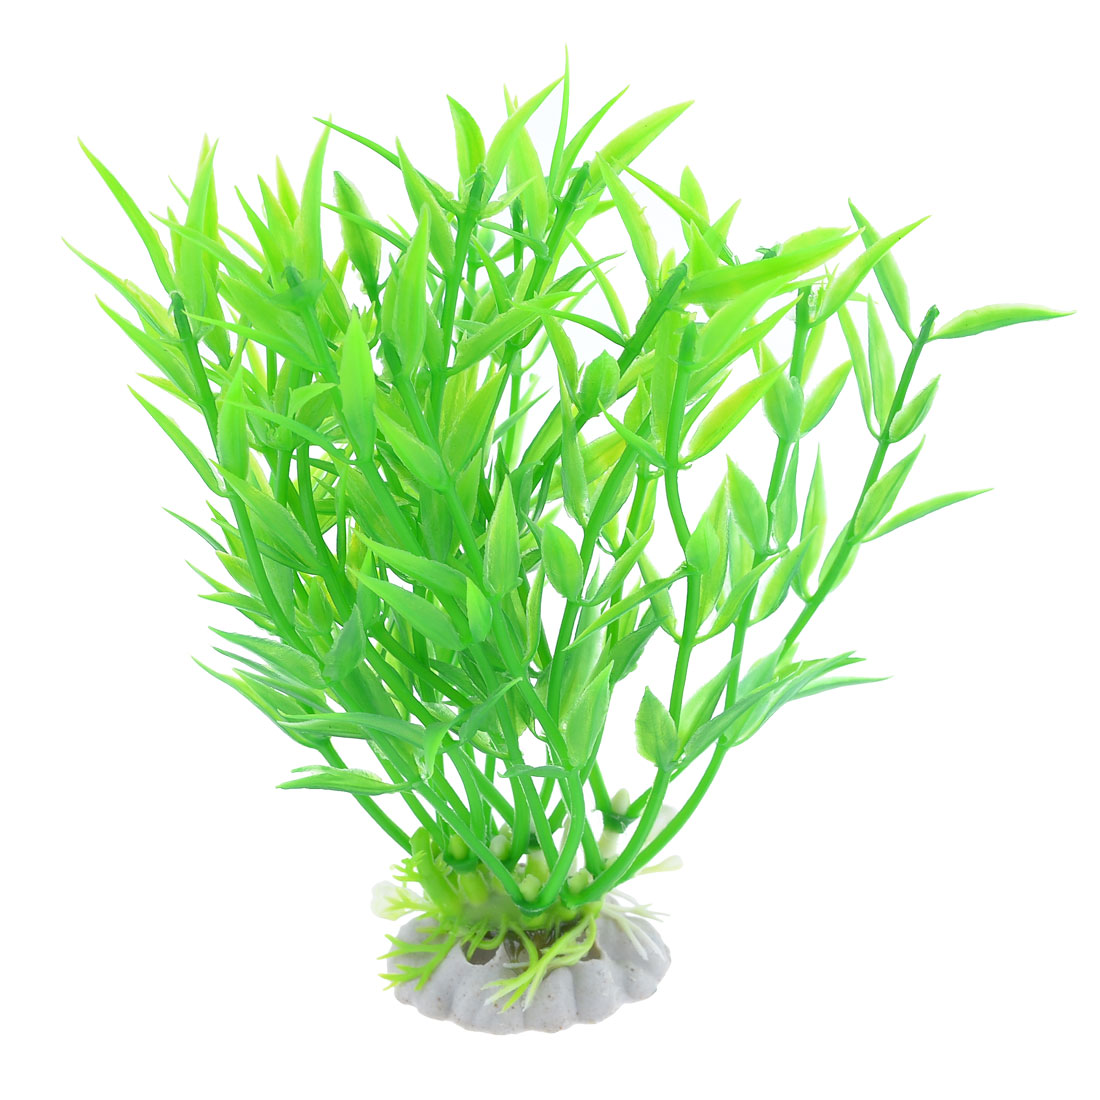 "5.1"" High Aquarium Fish Tank Ornament Green Plastic Water Plant Grass"